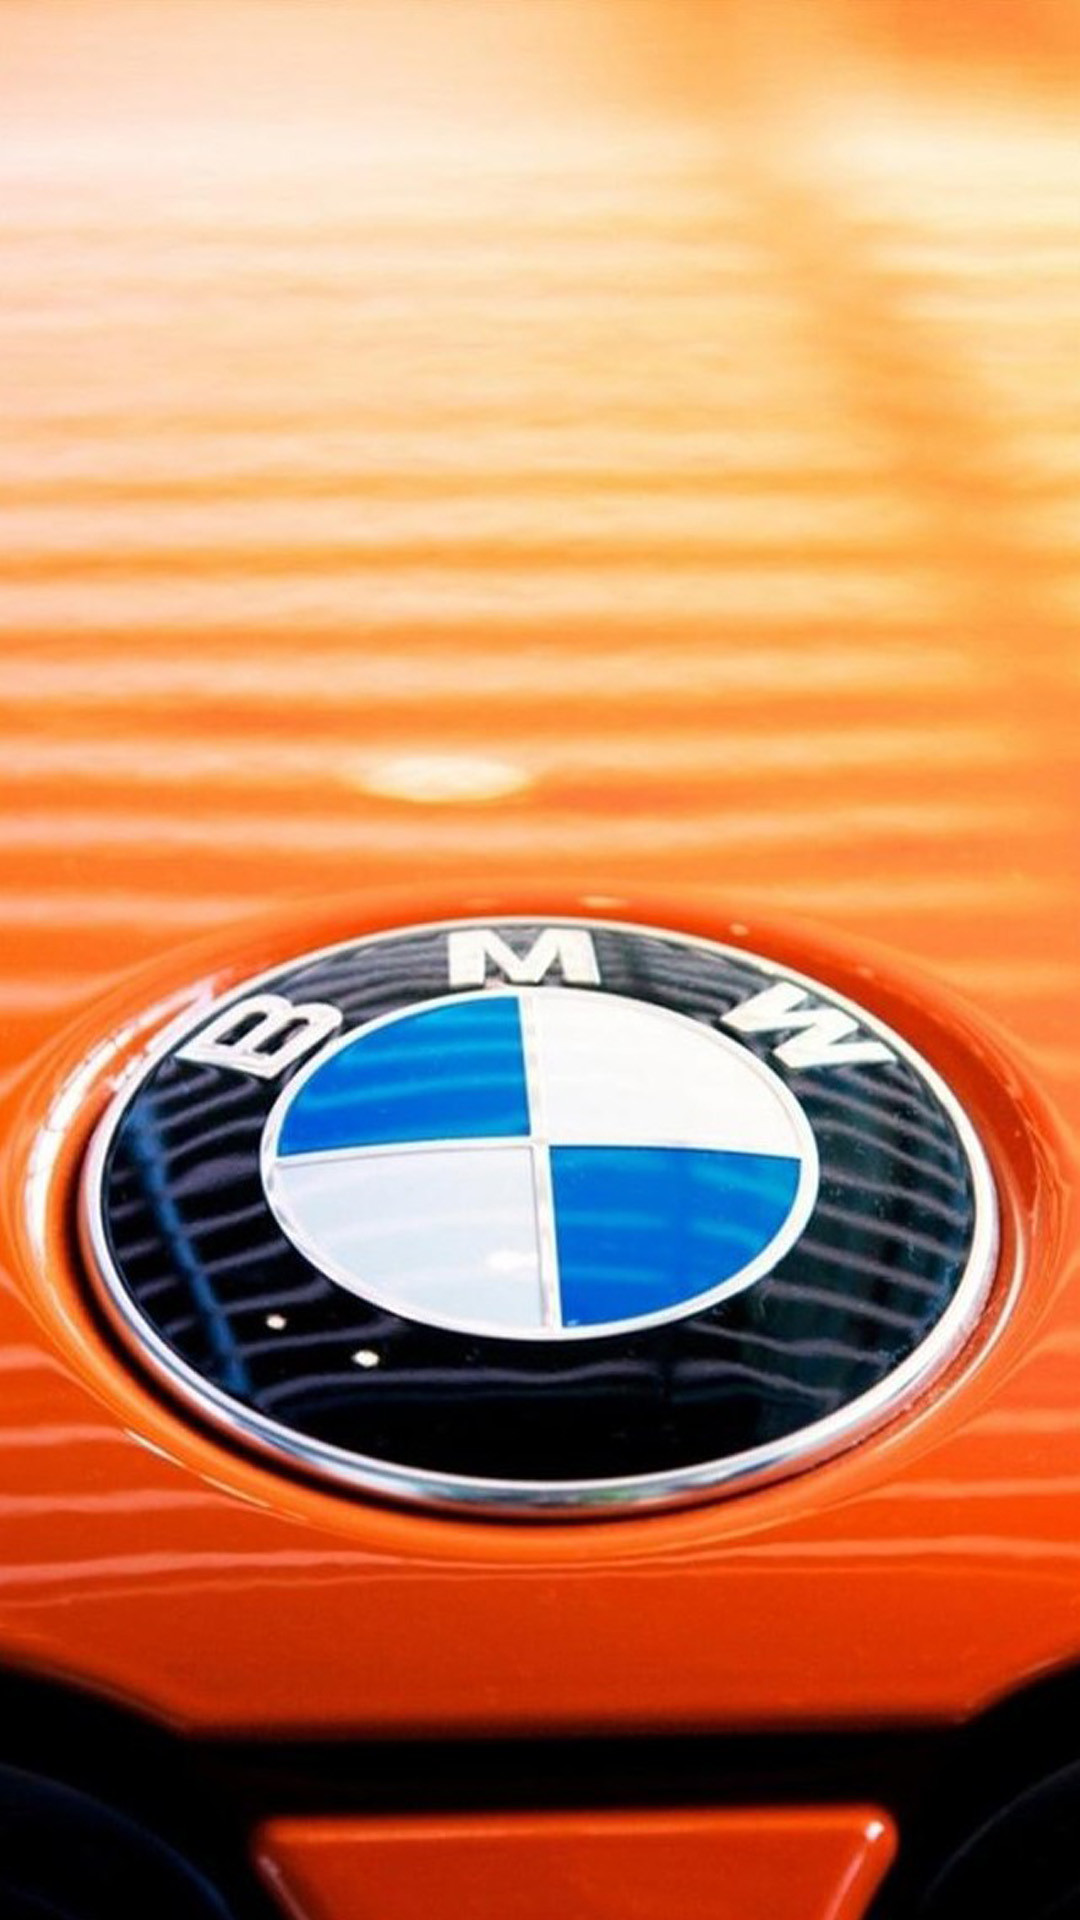 1080x1920 Bmw Logo Hd Wallpapers High Resolution Cars Wallpaper